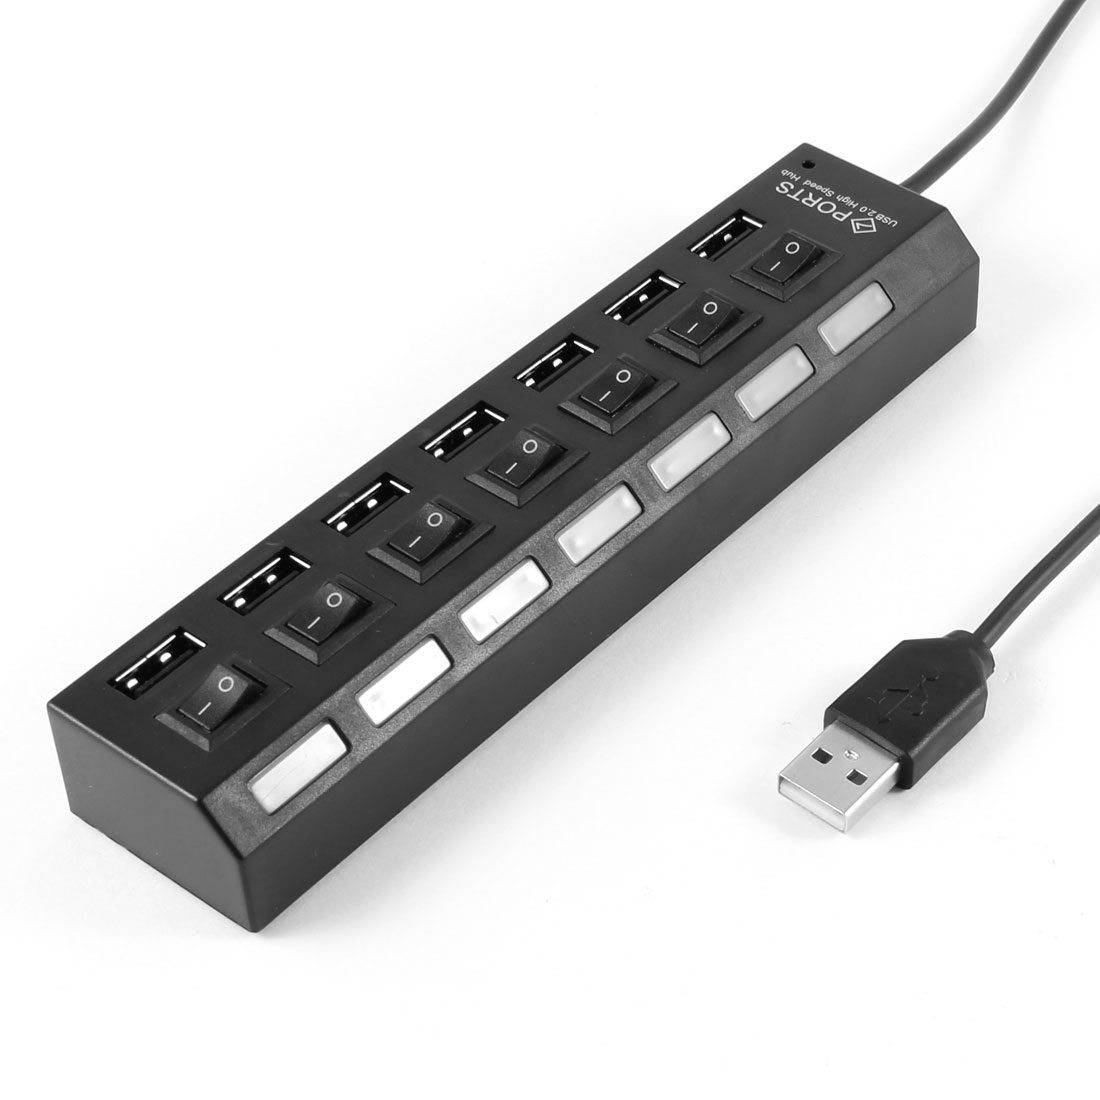 LED Indicator On/Off Switch 7 Ports USB 2.0 Hub Splitter Adapter for PC